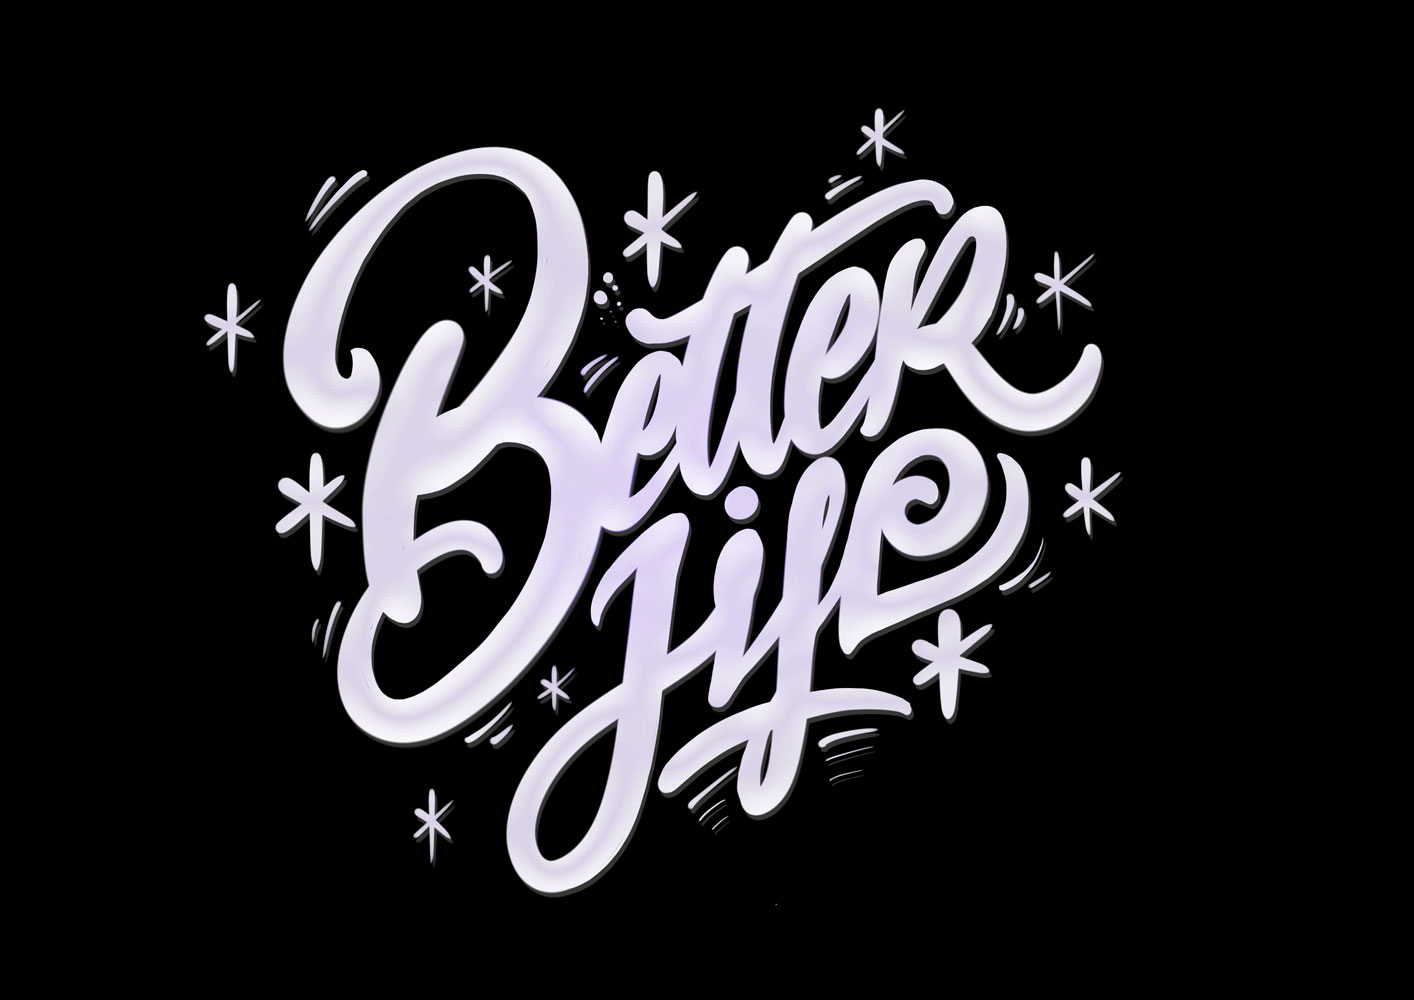 Lettering artwork with the title 'Better Life'. Curved lines and soft pink shades in front of a black background.